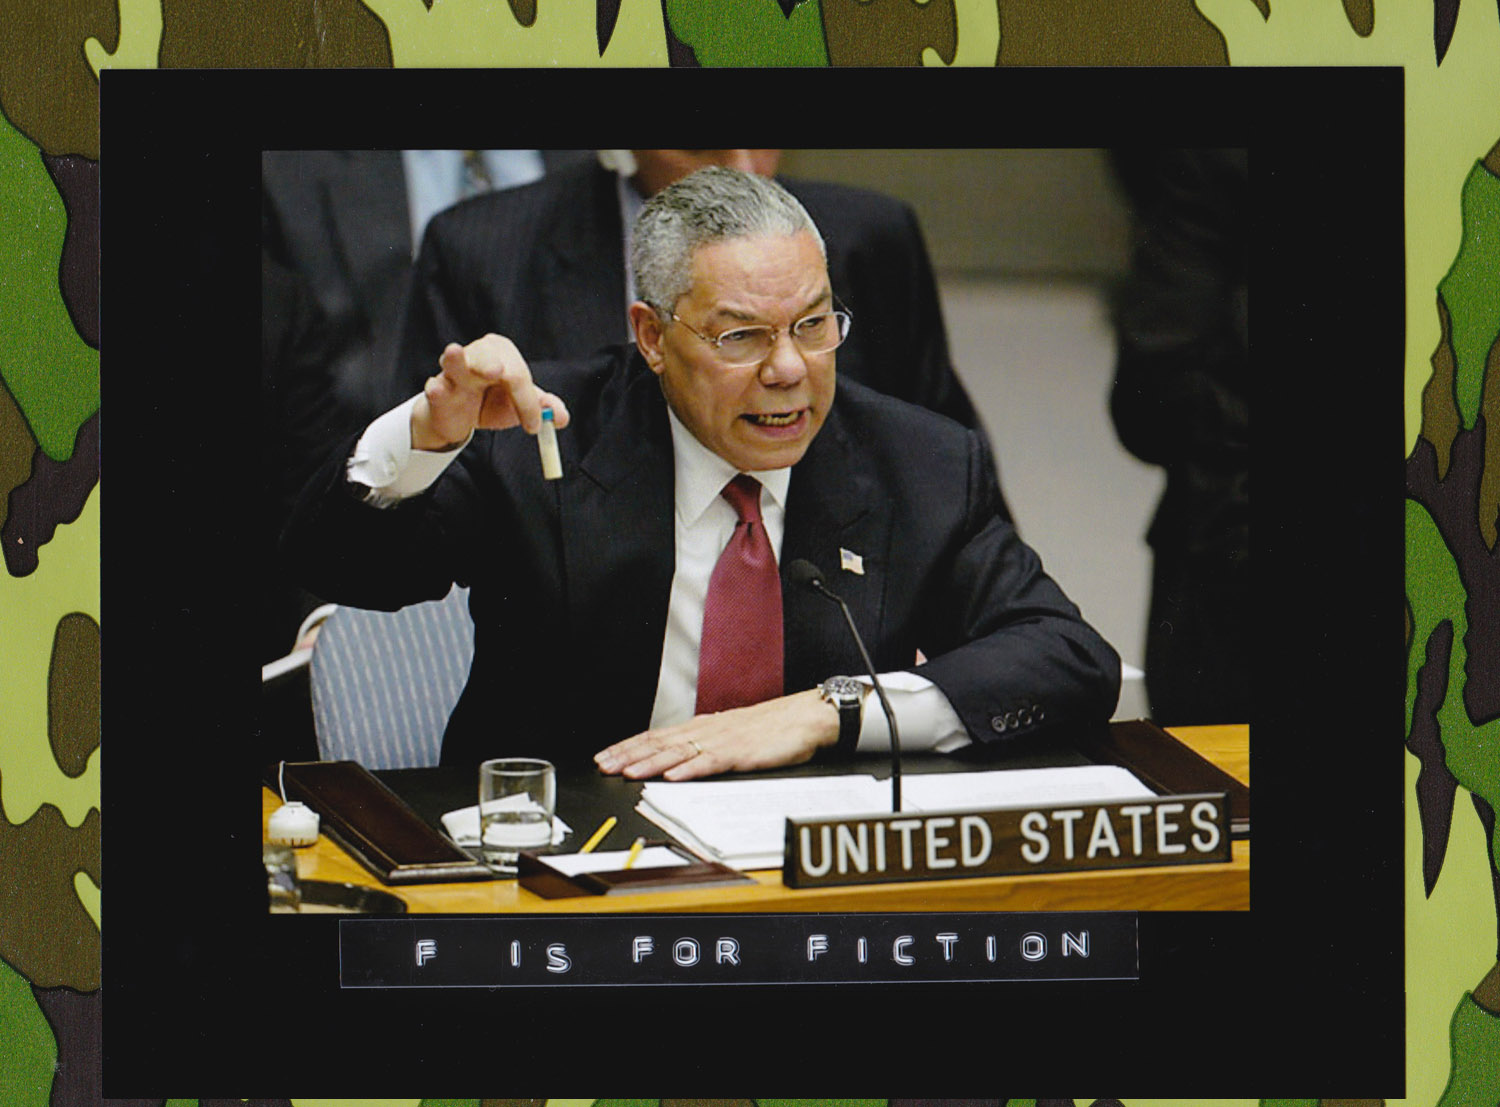 In his Feb. 5, 2003 address to the United Nations Security Council, U.S. Secretary of State Colin Powell holds up a vial he said could contain anthrax as he presents evidence of Iraq's alleged weapons programs. (Photo: Ray Stubblebine/Reuters)